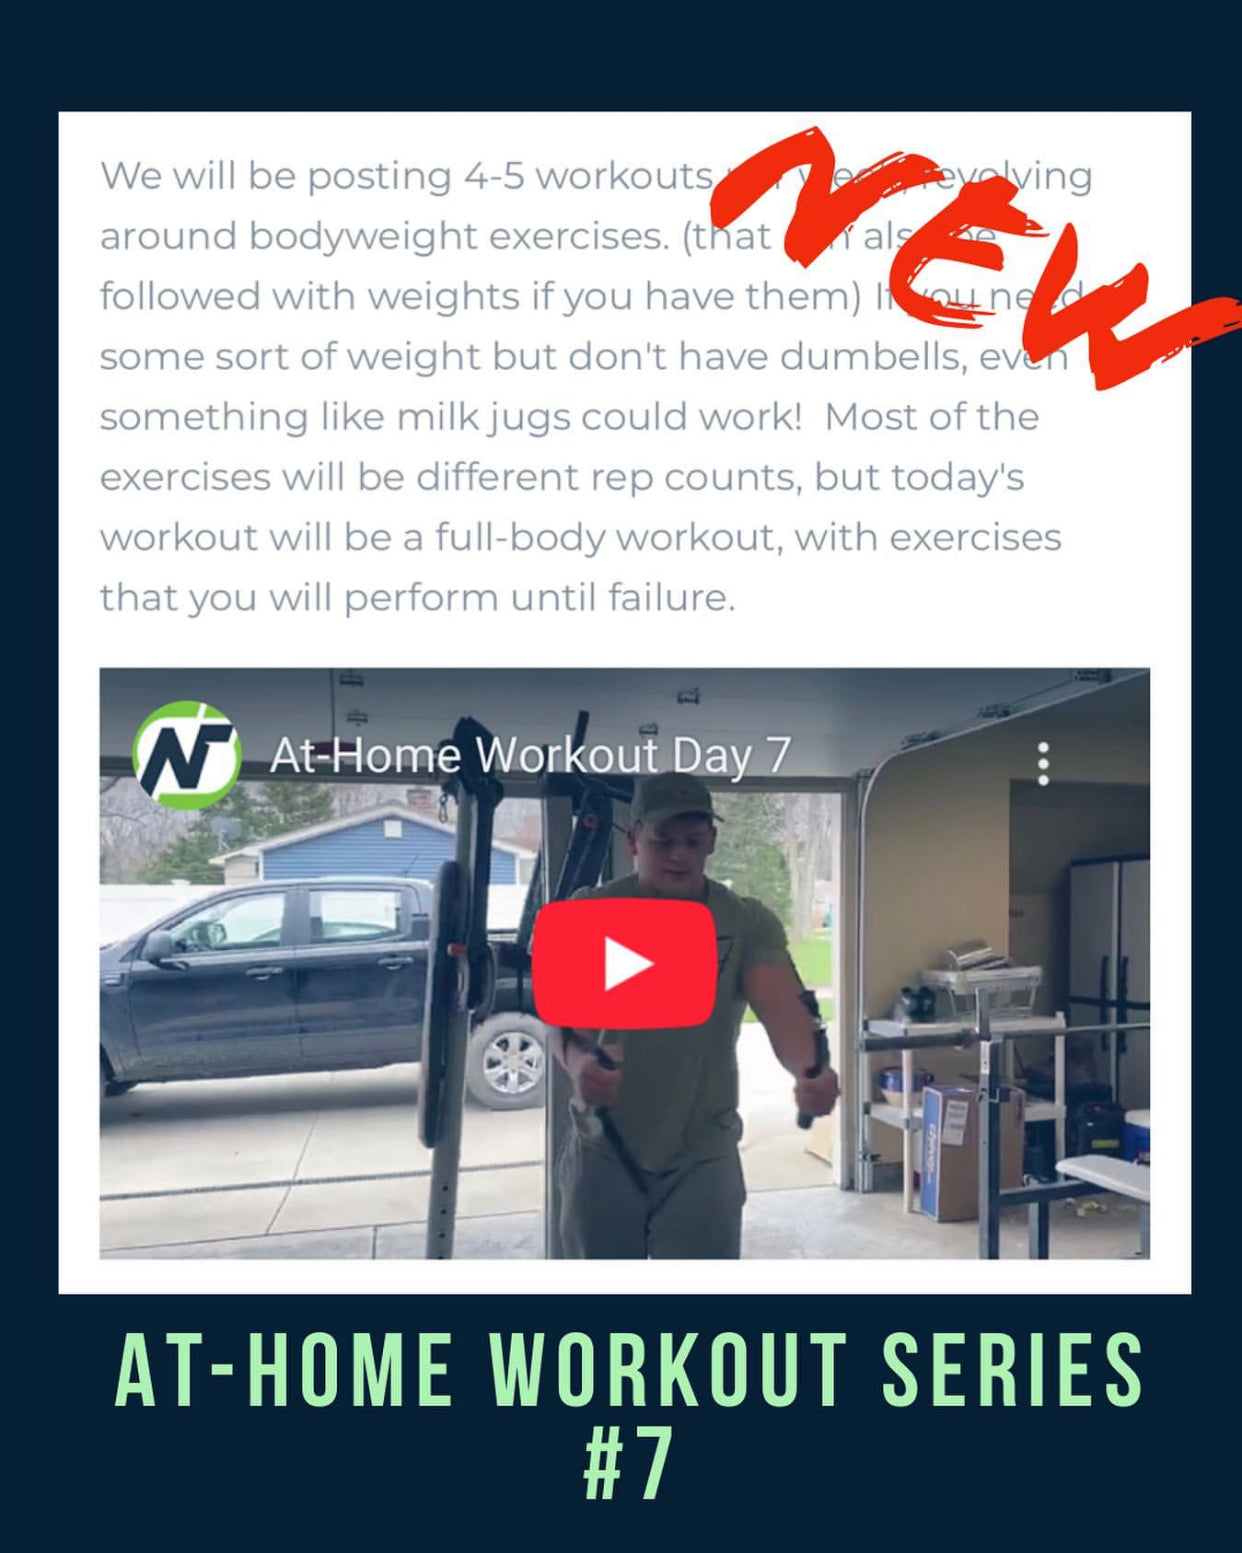 At-Home Workout #7